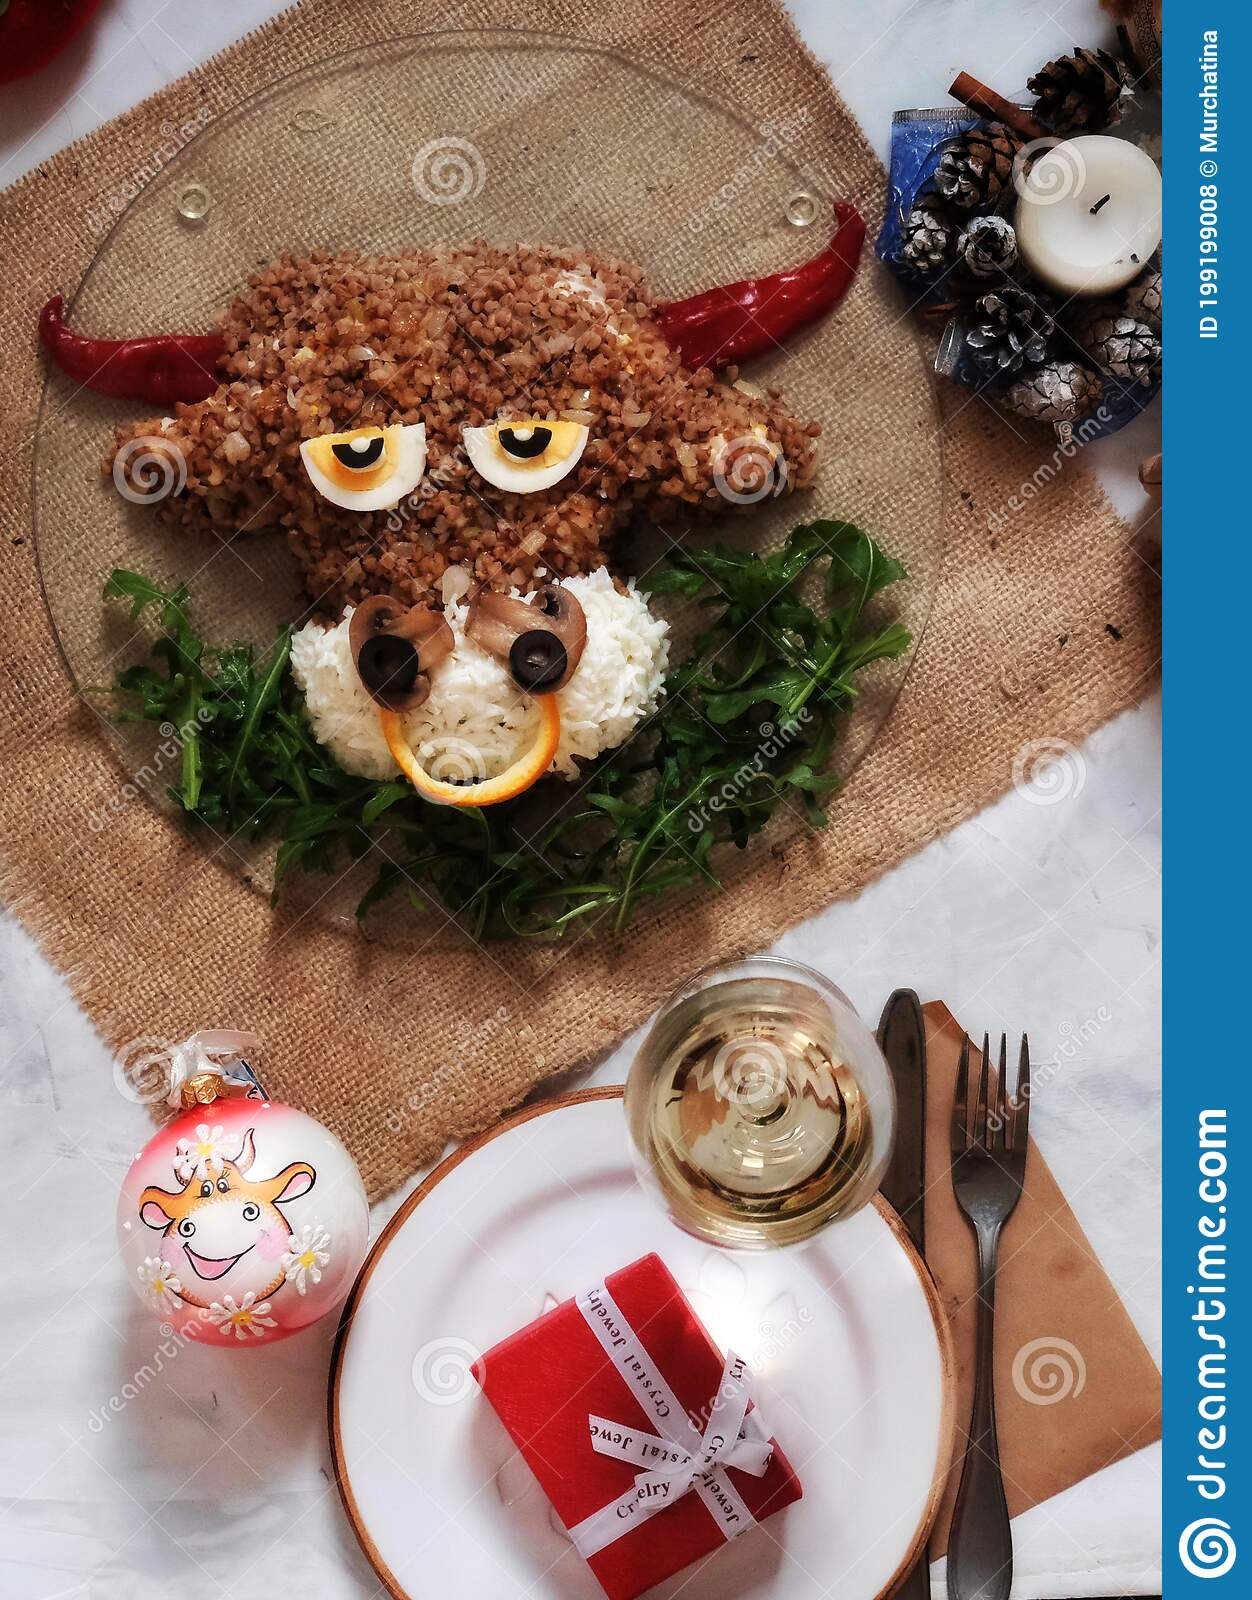 Is Jewel Open On Christmas 2021 New Year Food Food Art Bull Shaped Salad Flatlay Salad New Year 2021 Christmas 2021 Flat Lay Top View Champagne Stock Photo Image Of Decorate Cooked 199199008